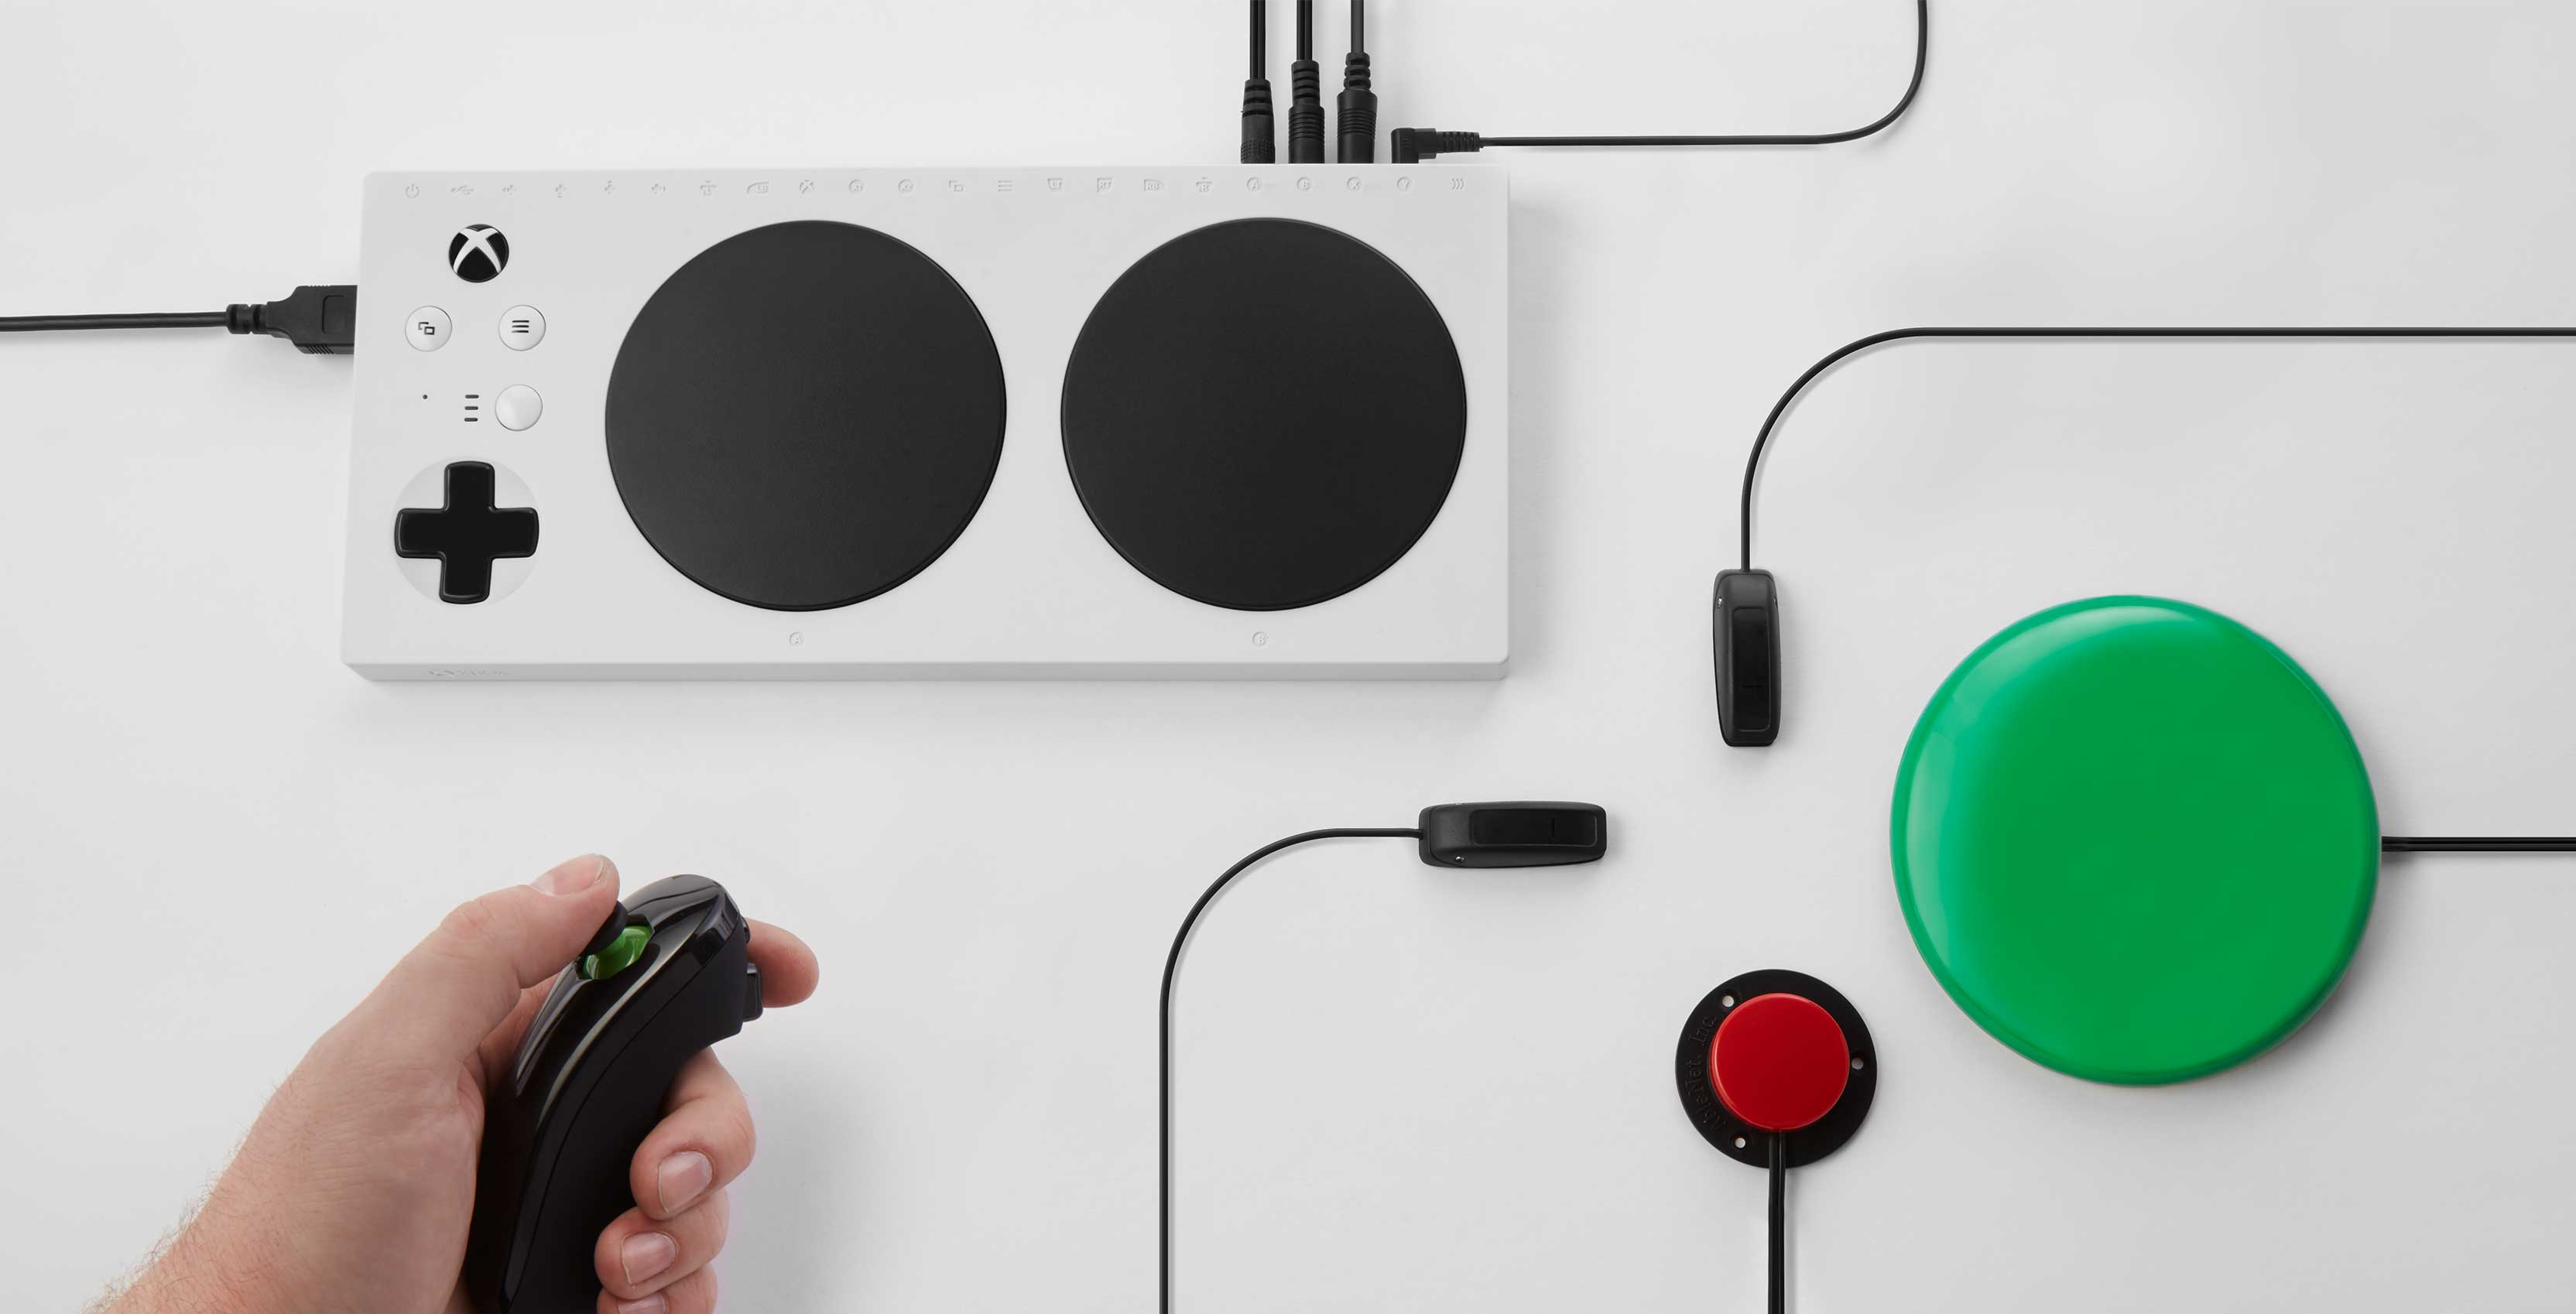 SpecialEffect collaborate in development of new Xbox Adaptive Controller